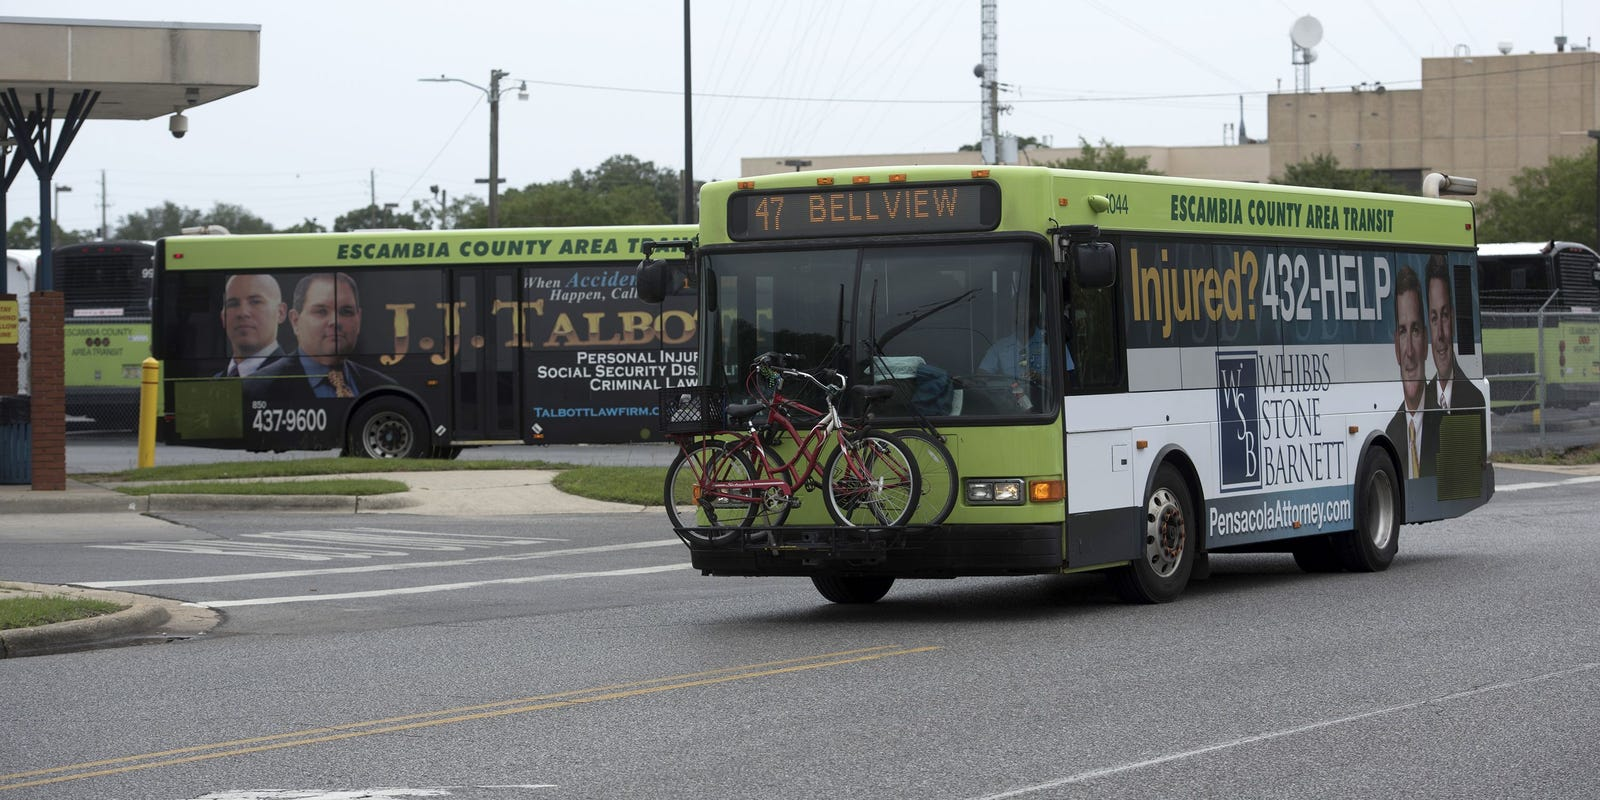 Free bus service expanded to include Pensacola Beach